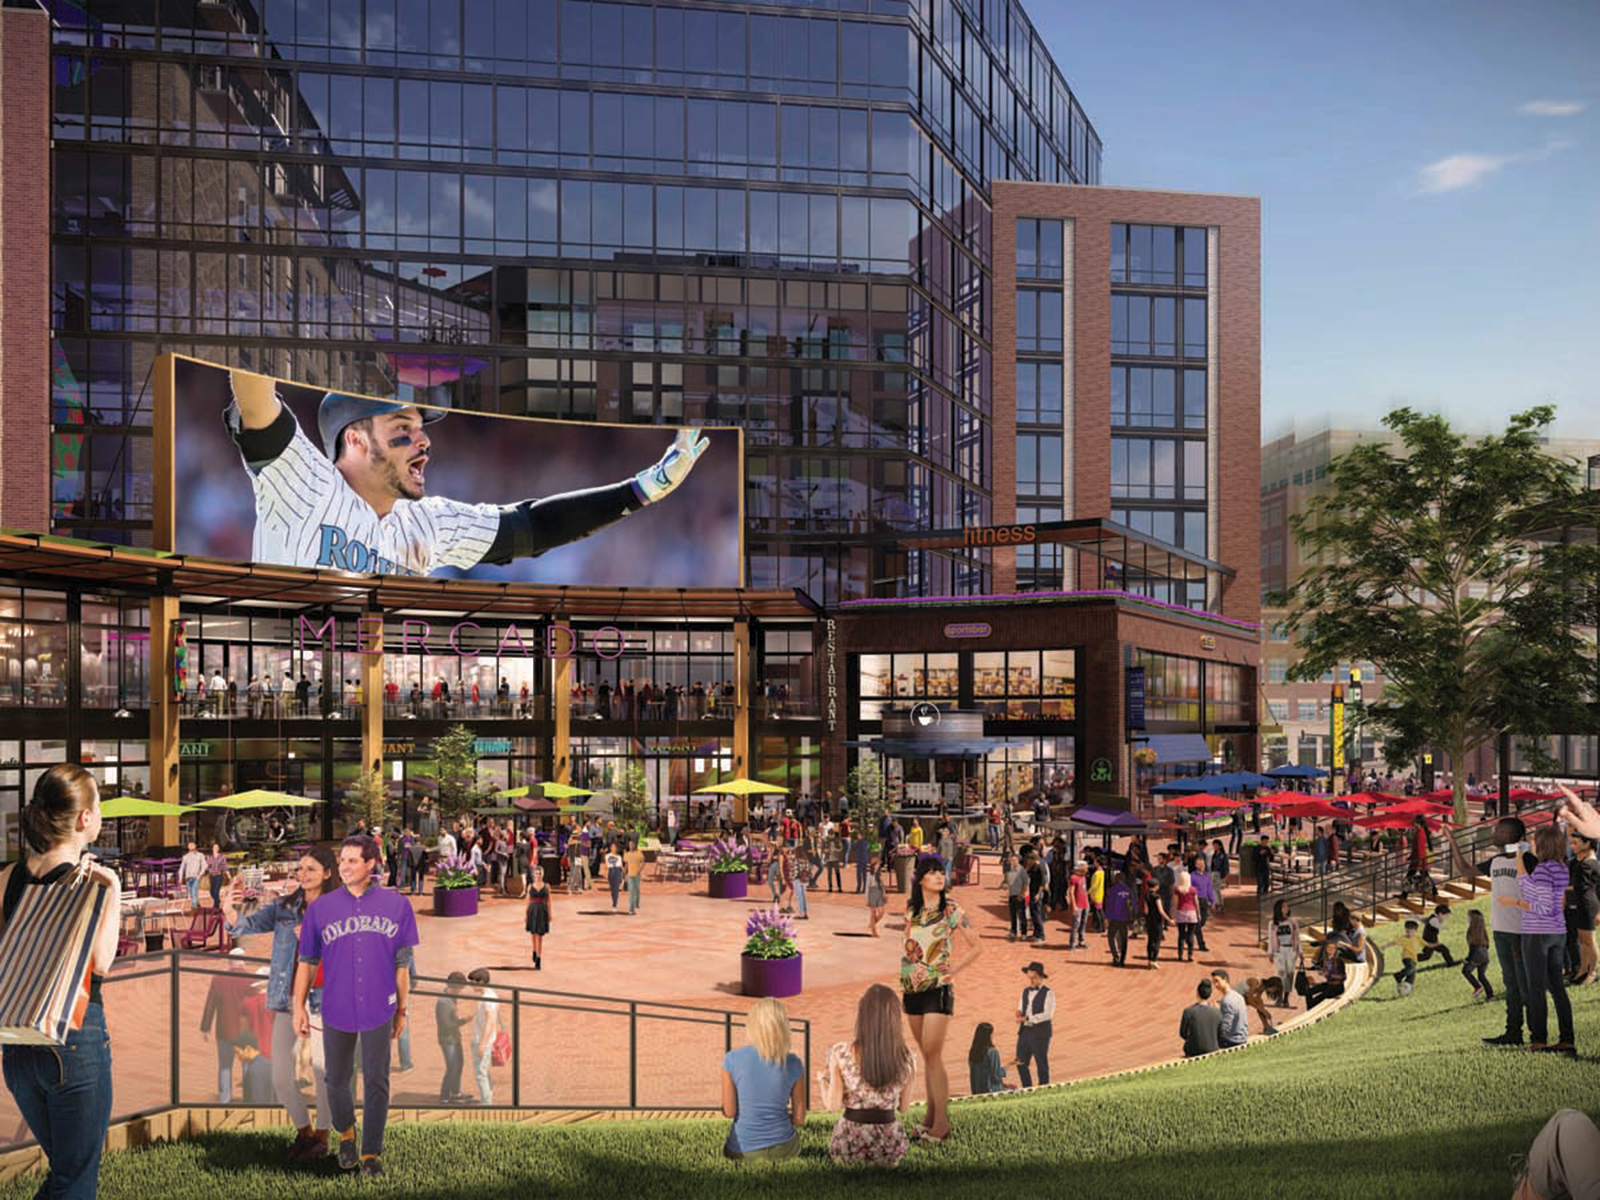 A Look Inside the Rockies Highly Anticipated McGregor Square Development - 5280